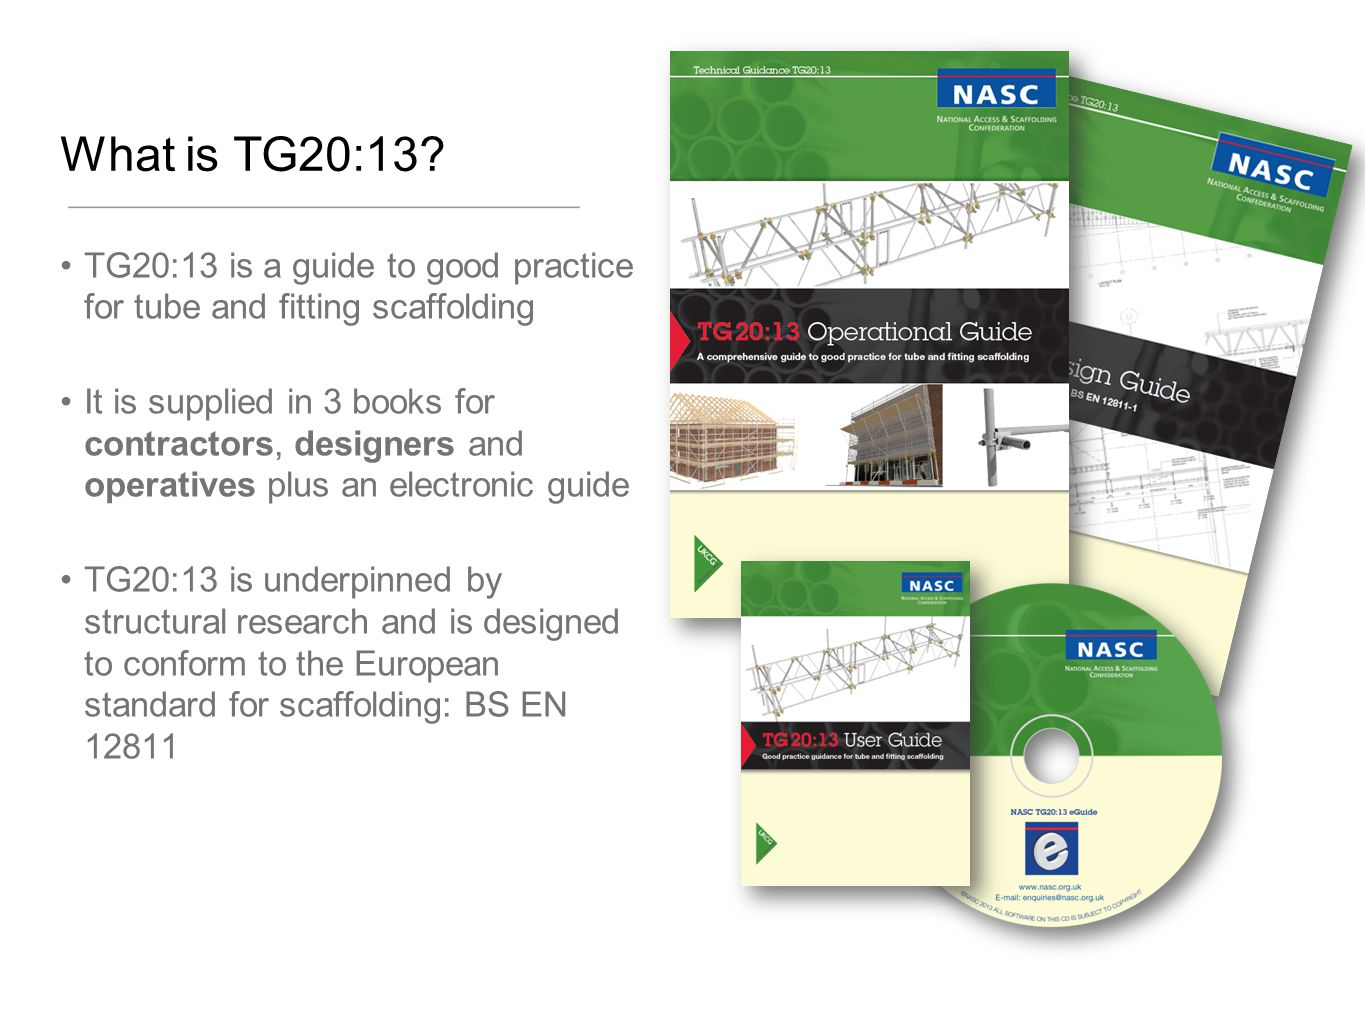 What is TG20:13 TG20:13 is a guide to good practice for tube and fitting scaffolding.